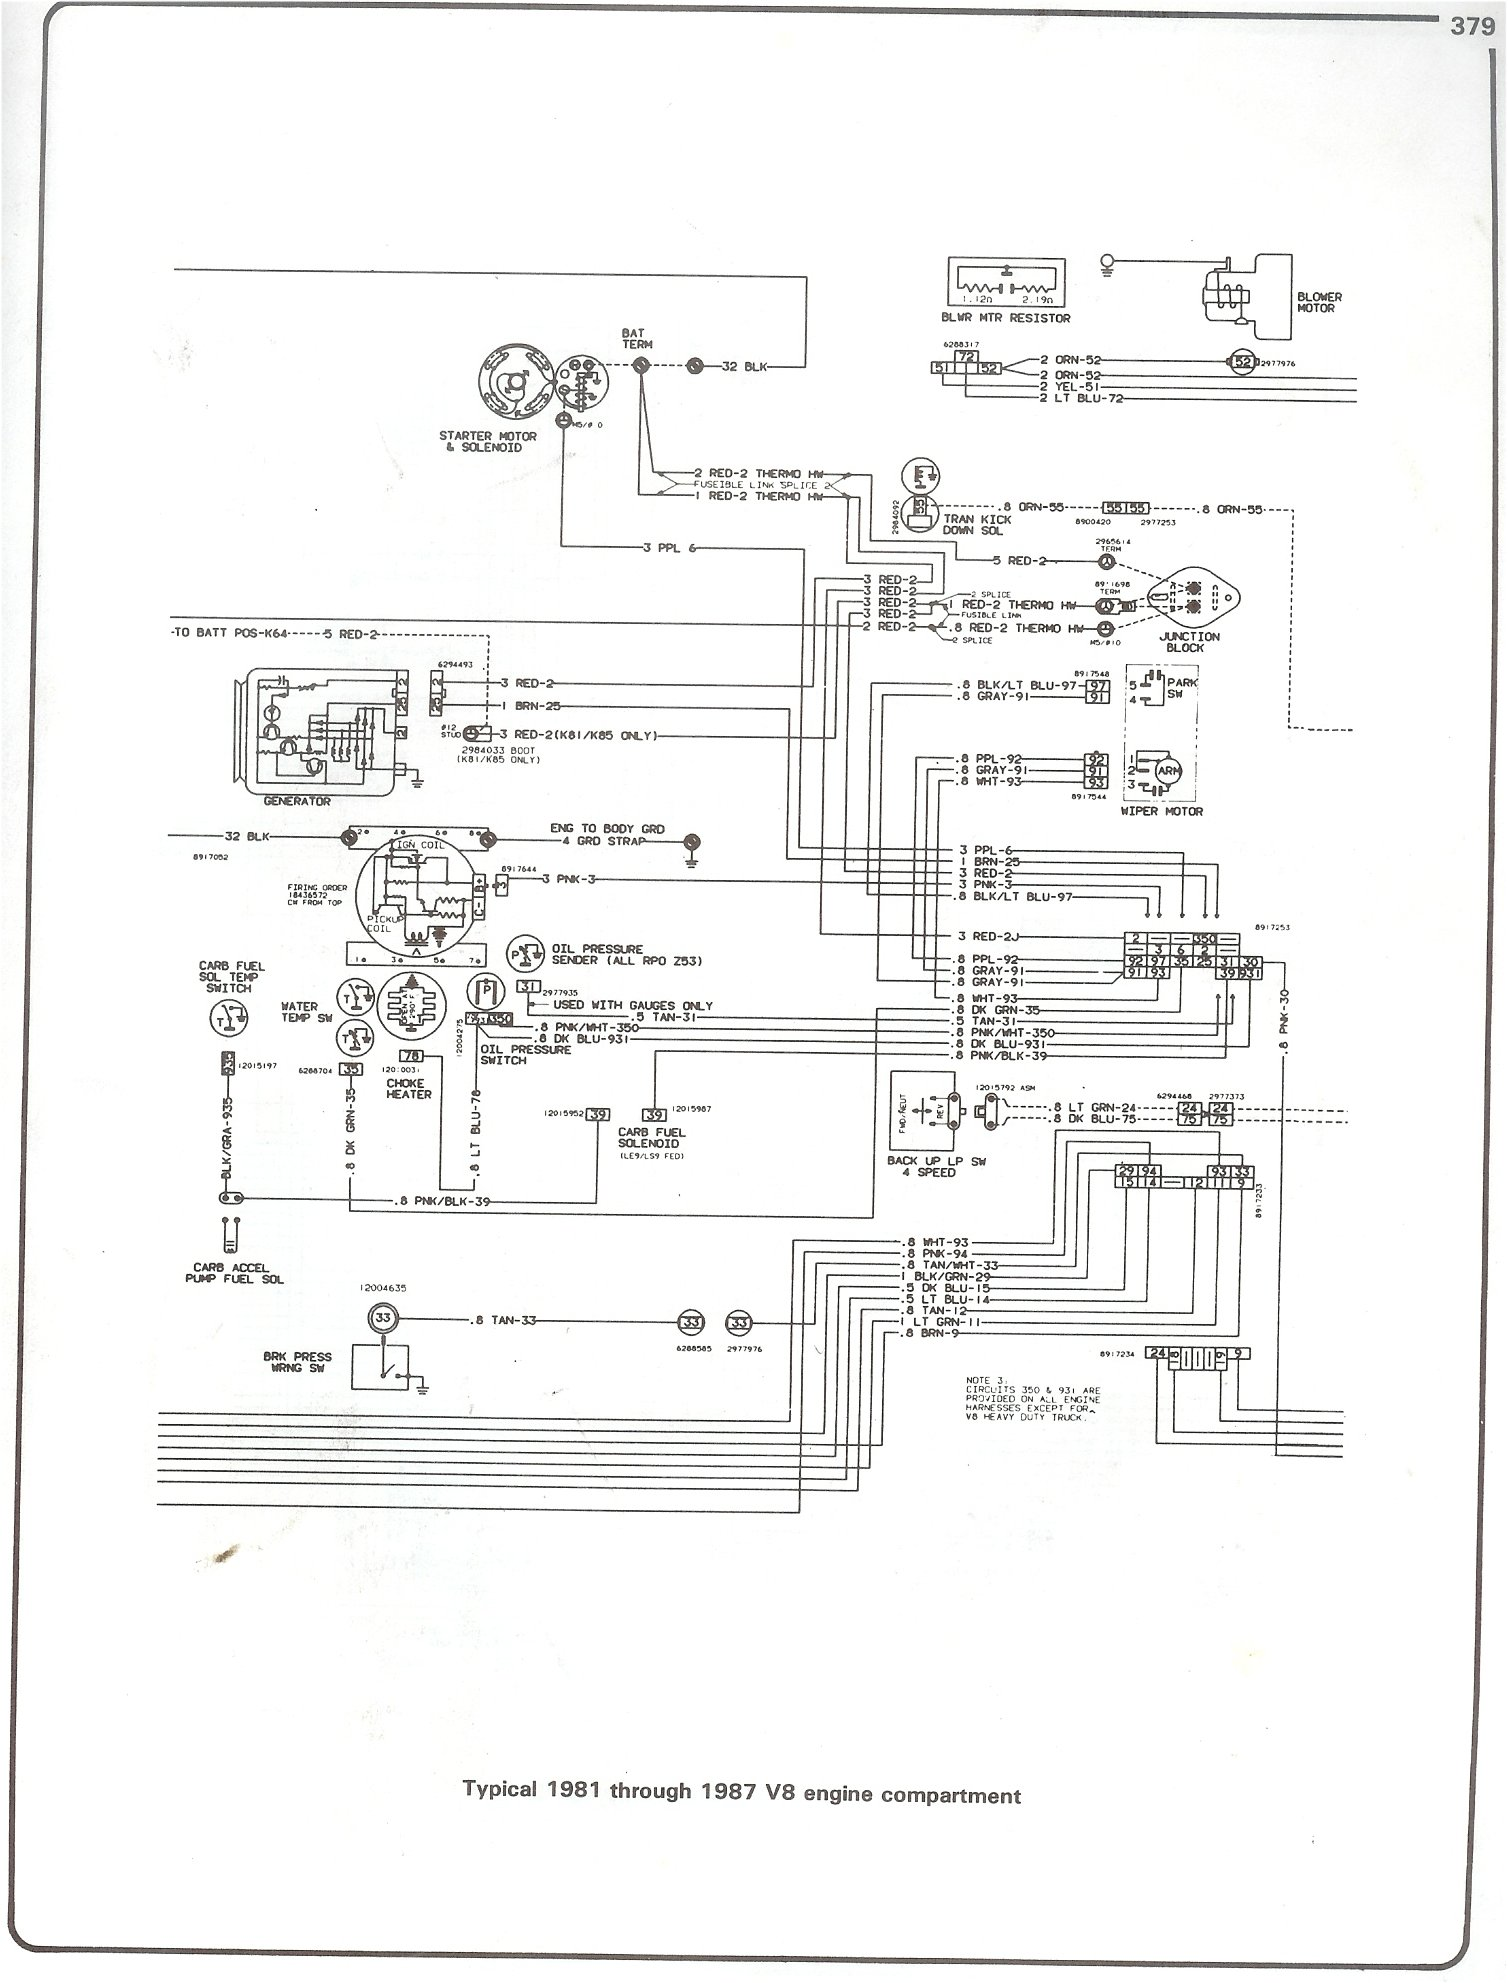 81 87_V8_engine complete 73 87 wiring diagrams  at mifinder.co